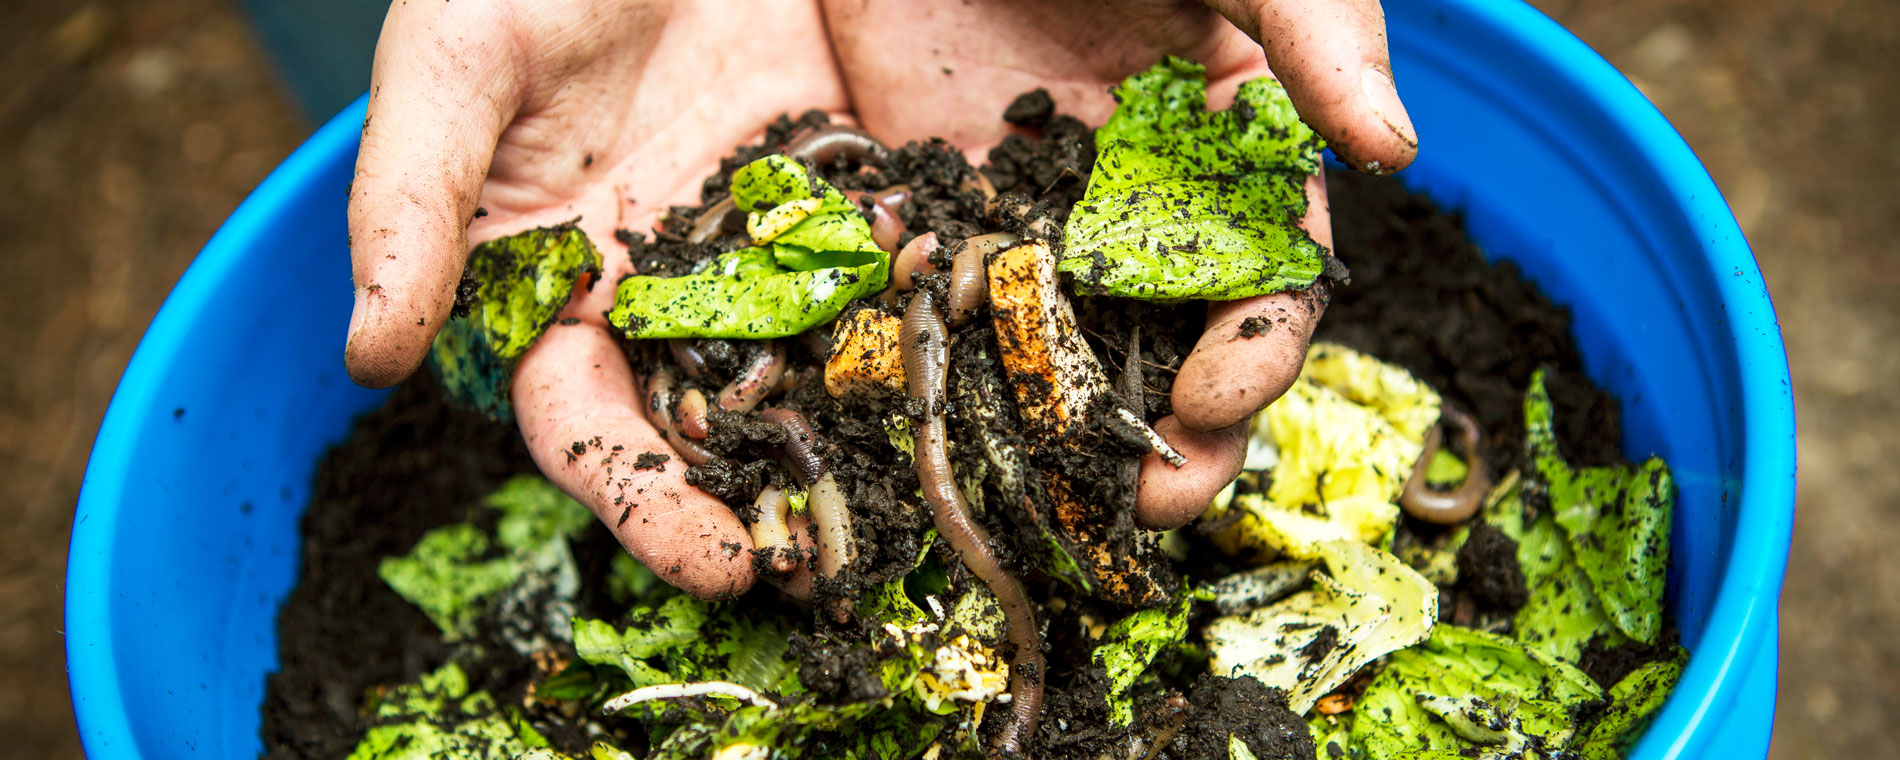 last year saw numerous attempts to tackle food waste in the uk and yet despite the tinderstyle food sharing apps